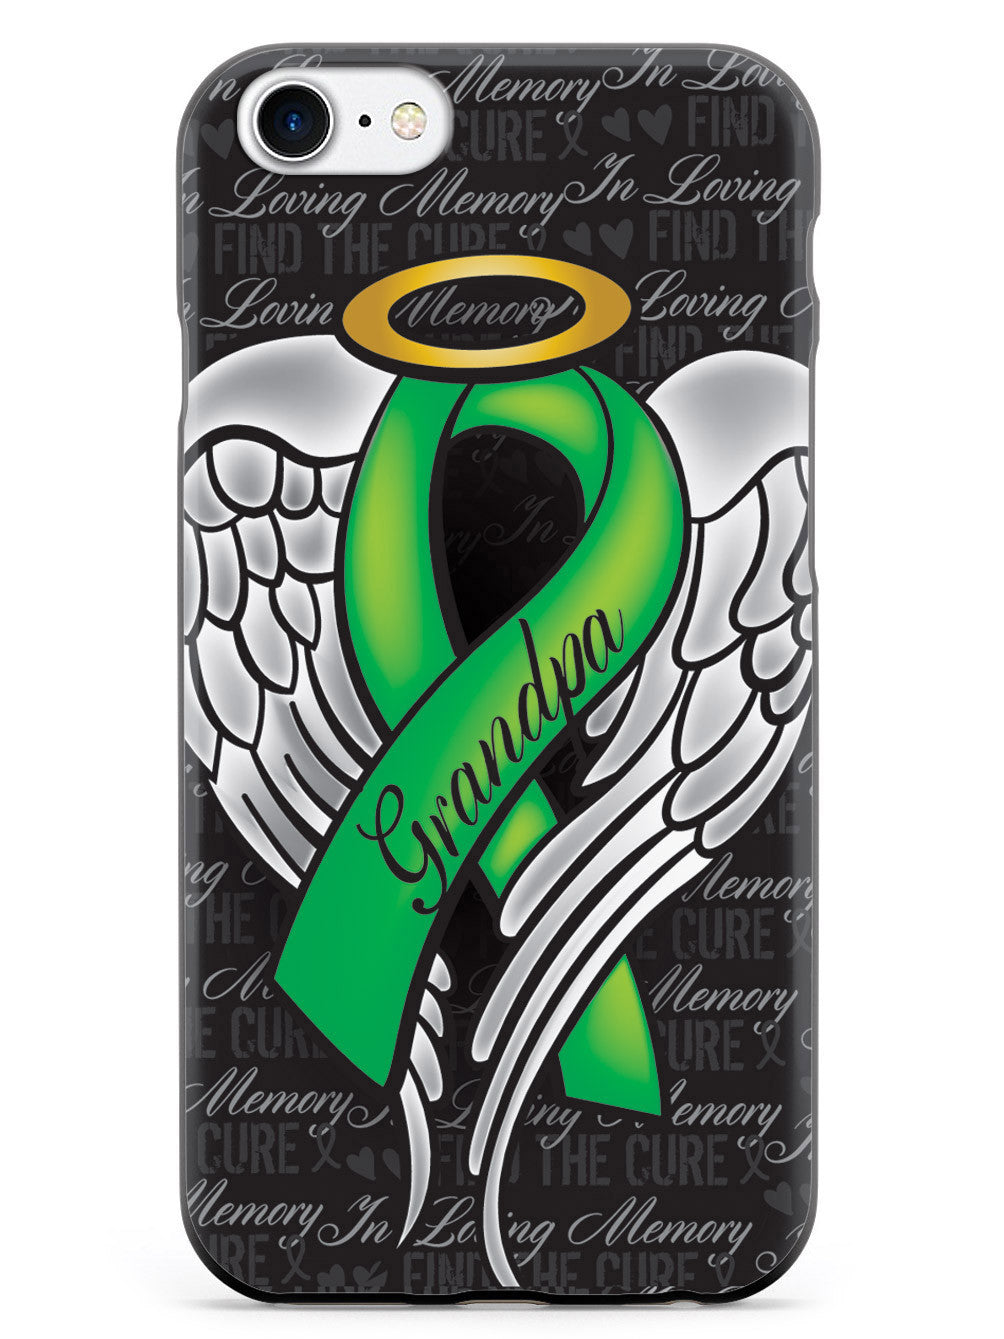 In Loving Memory of My Grandpa - Green Ribbon Case